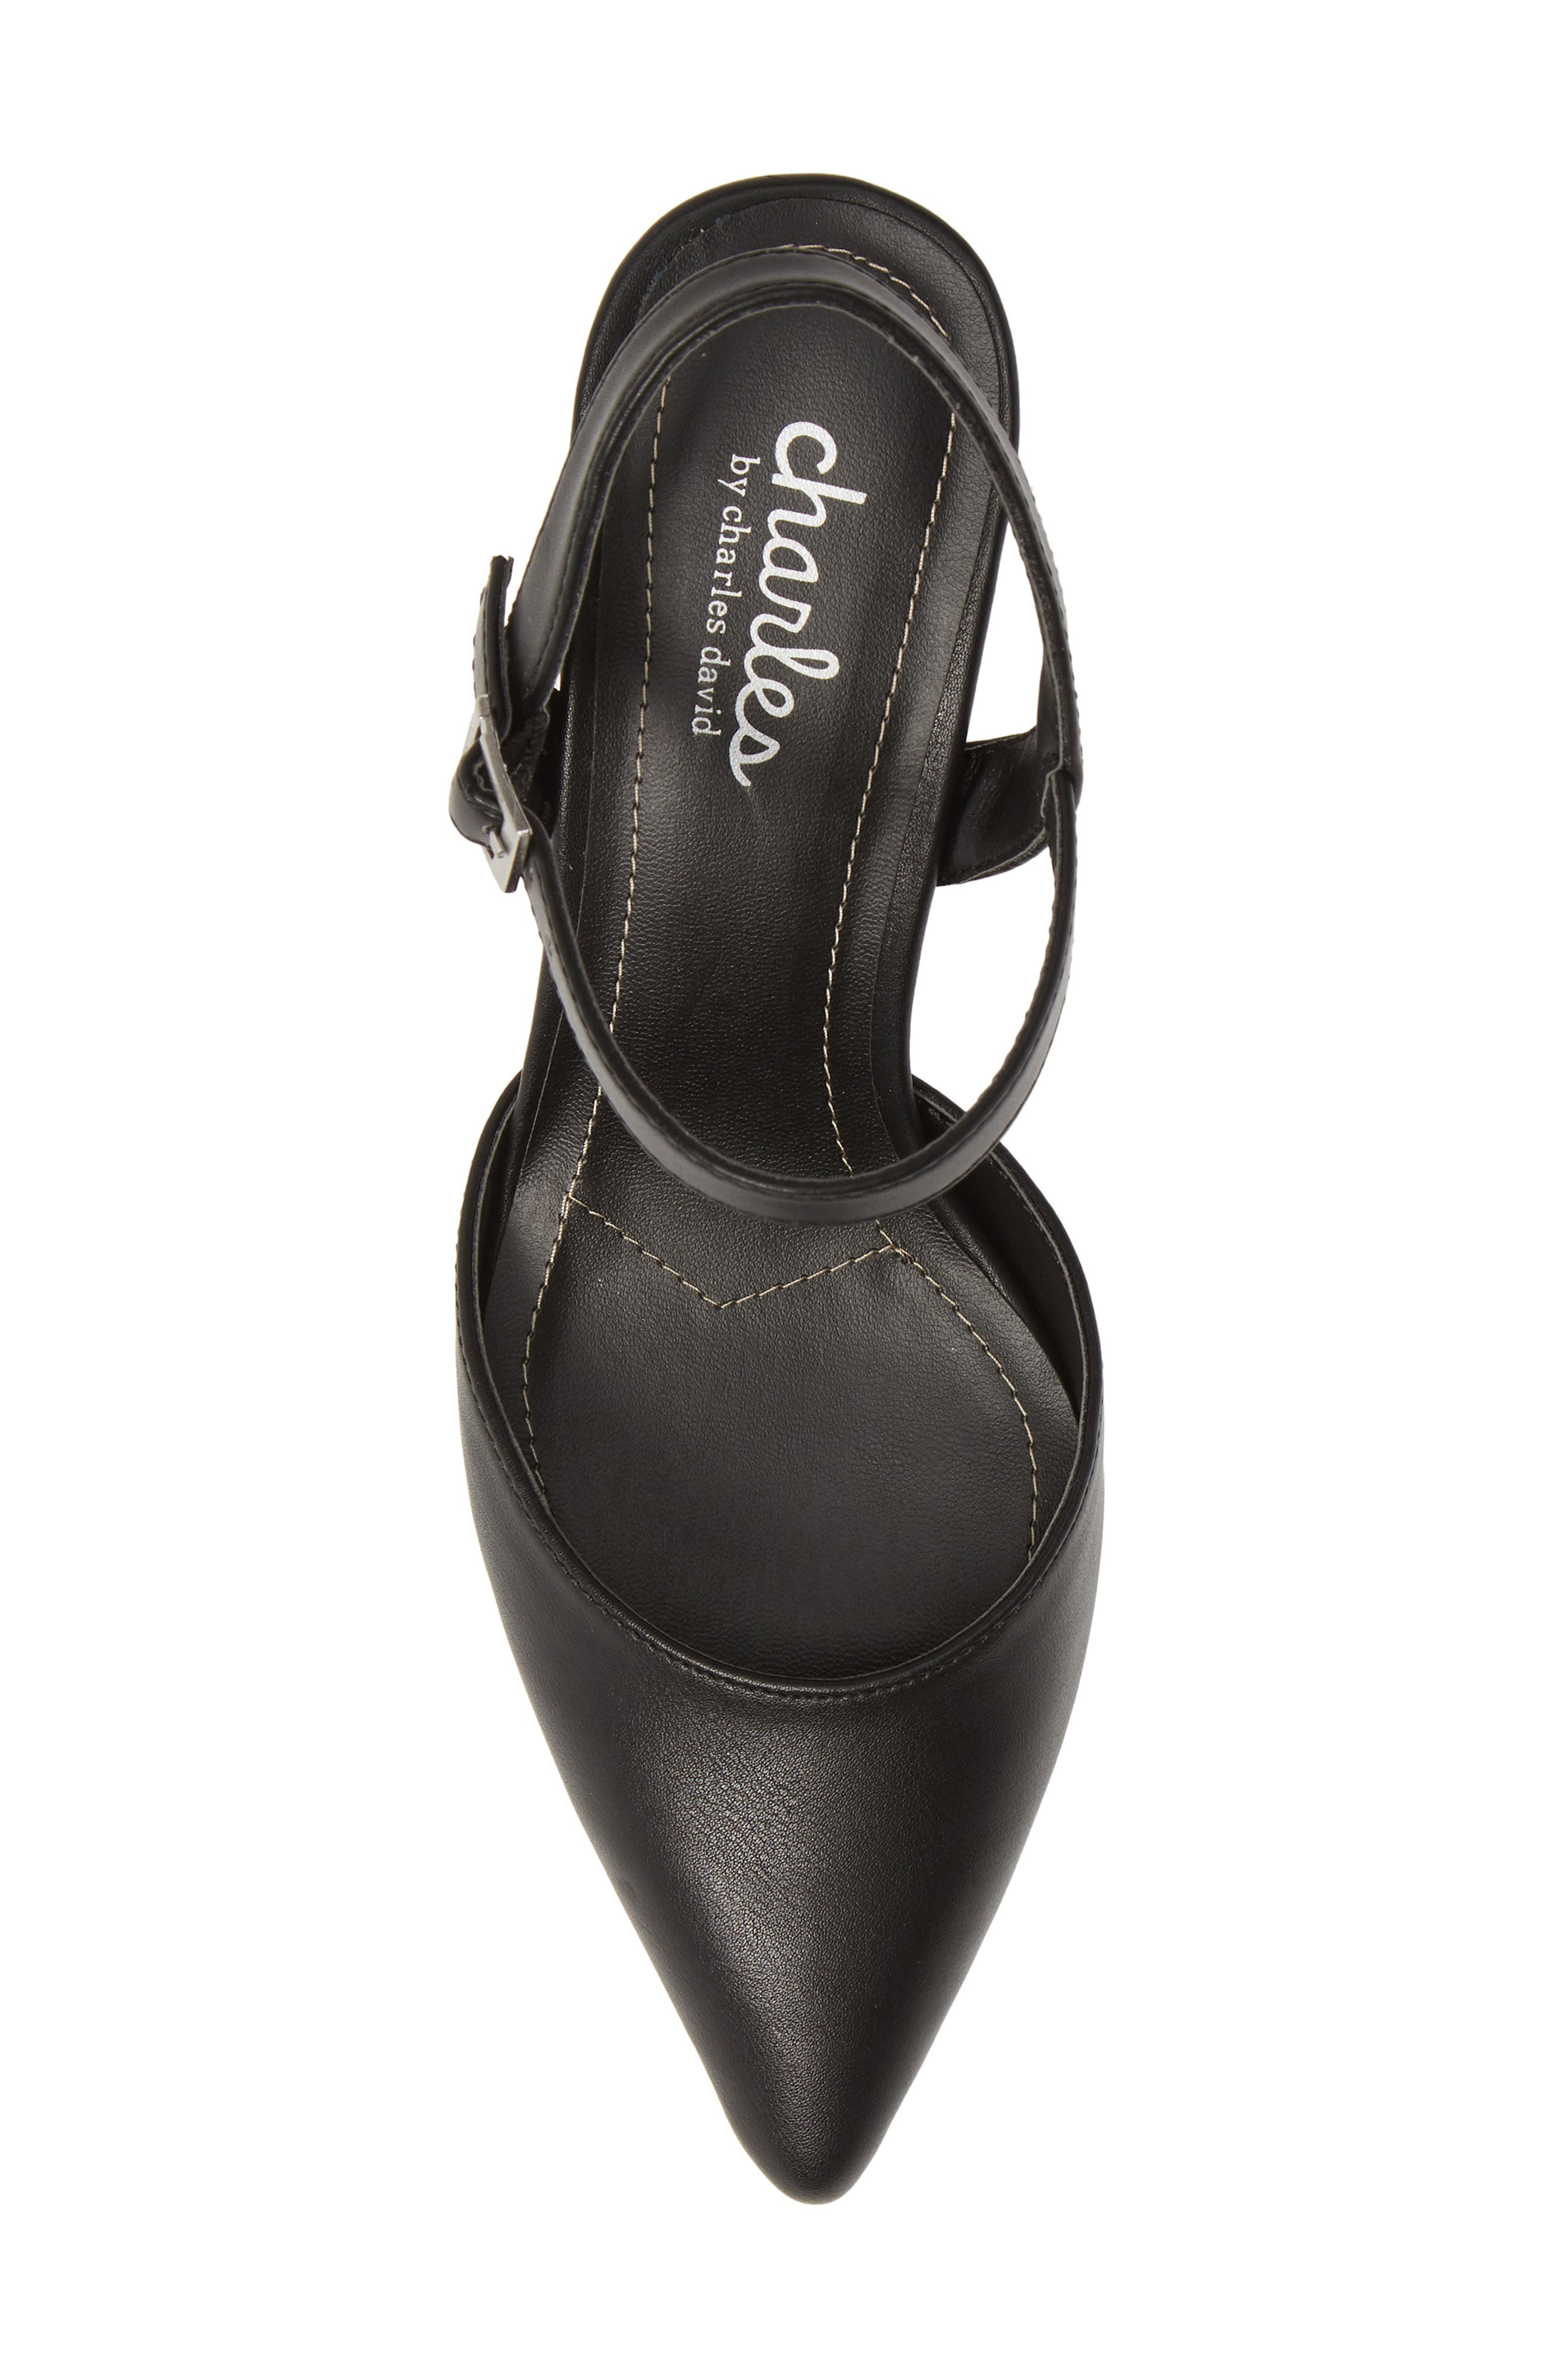 CHARLES BY CHARLES DAVID, Ankle Strap Pump, Alternate thumbnail 5, color, BLACK FAUX LEATHER